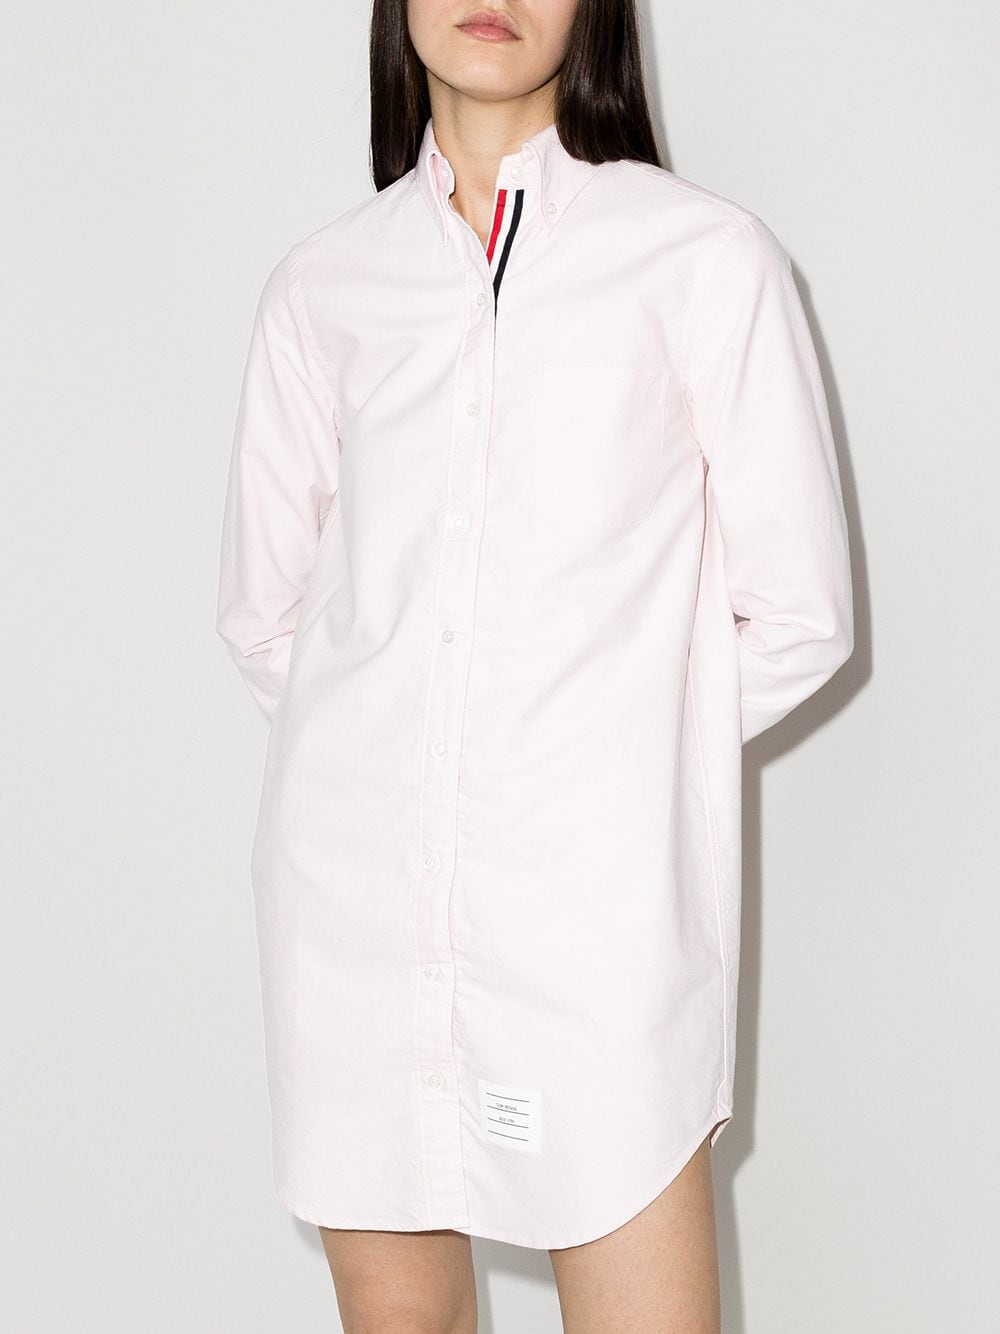 THOM BROWNE WOMEN CLASSIC LONG SLEEVE BUTTON DOWN POINT COLLAR THIGH LENGTH SHIRTDRESS W/ RWB GG PLACKET IN OXFORD